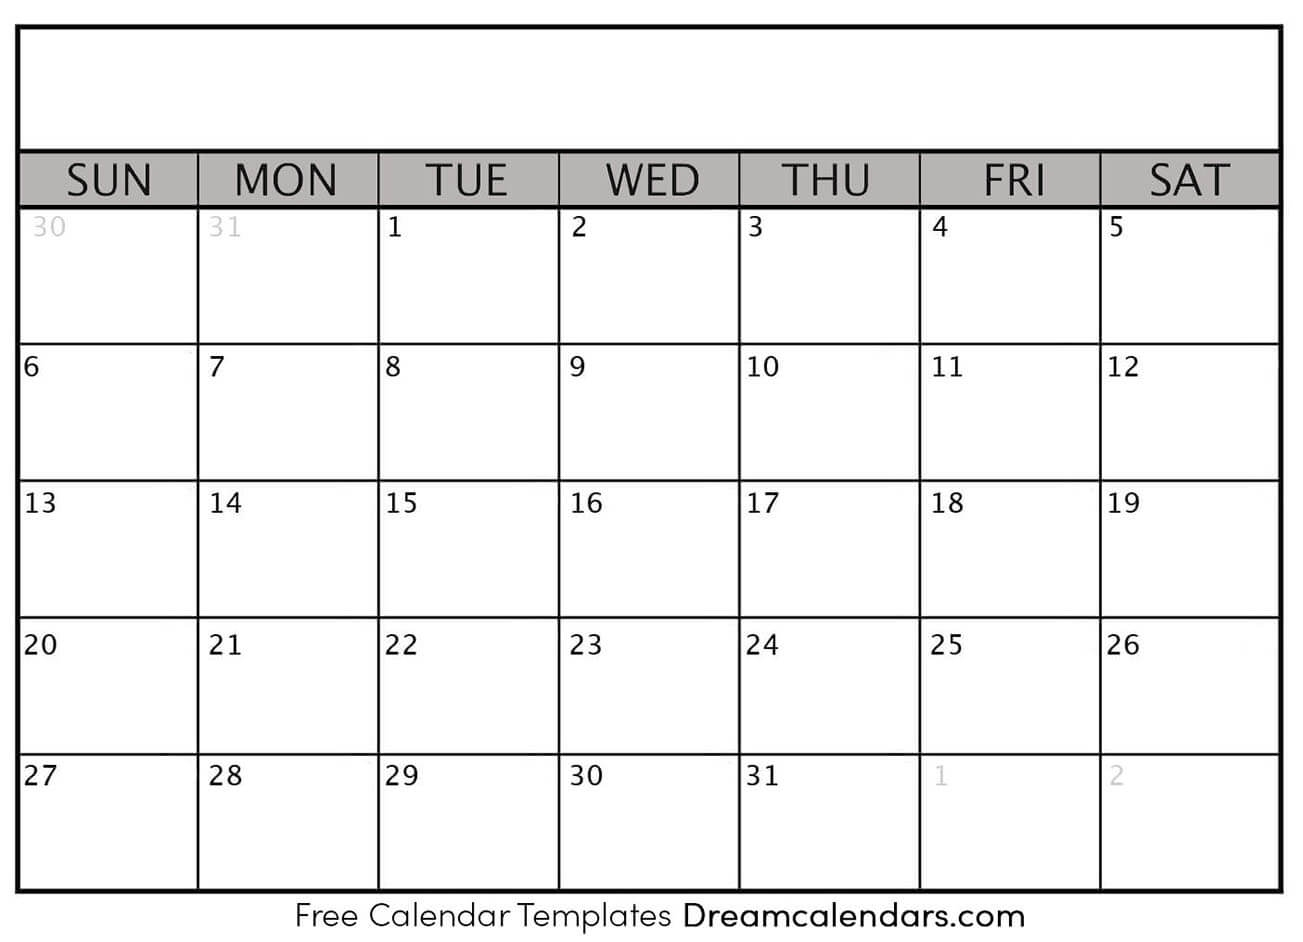 Printable Blank Calendar 2020 | Dream Calendars